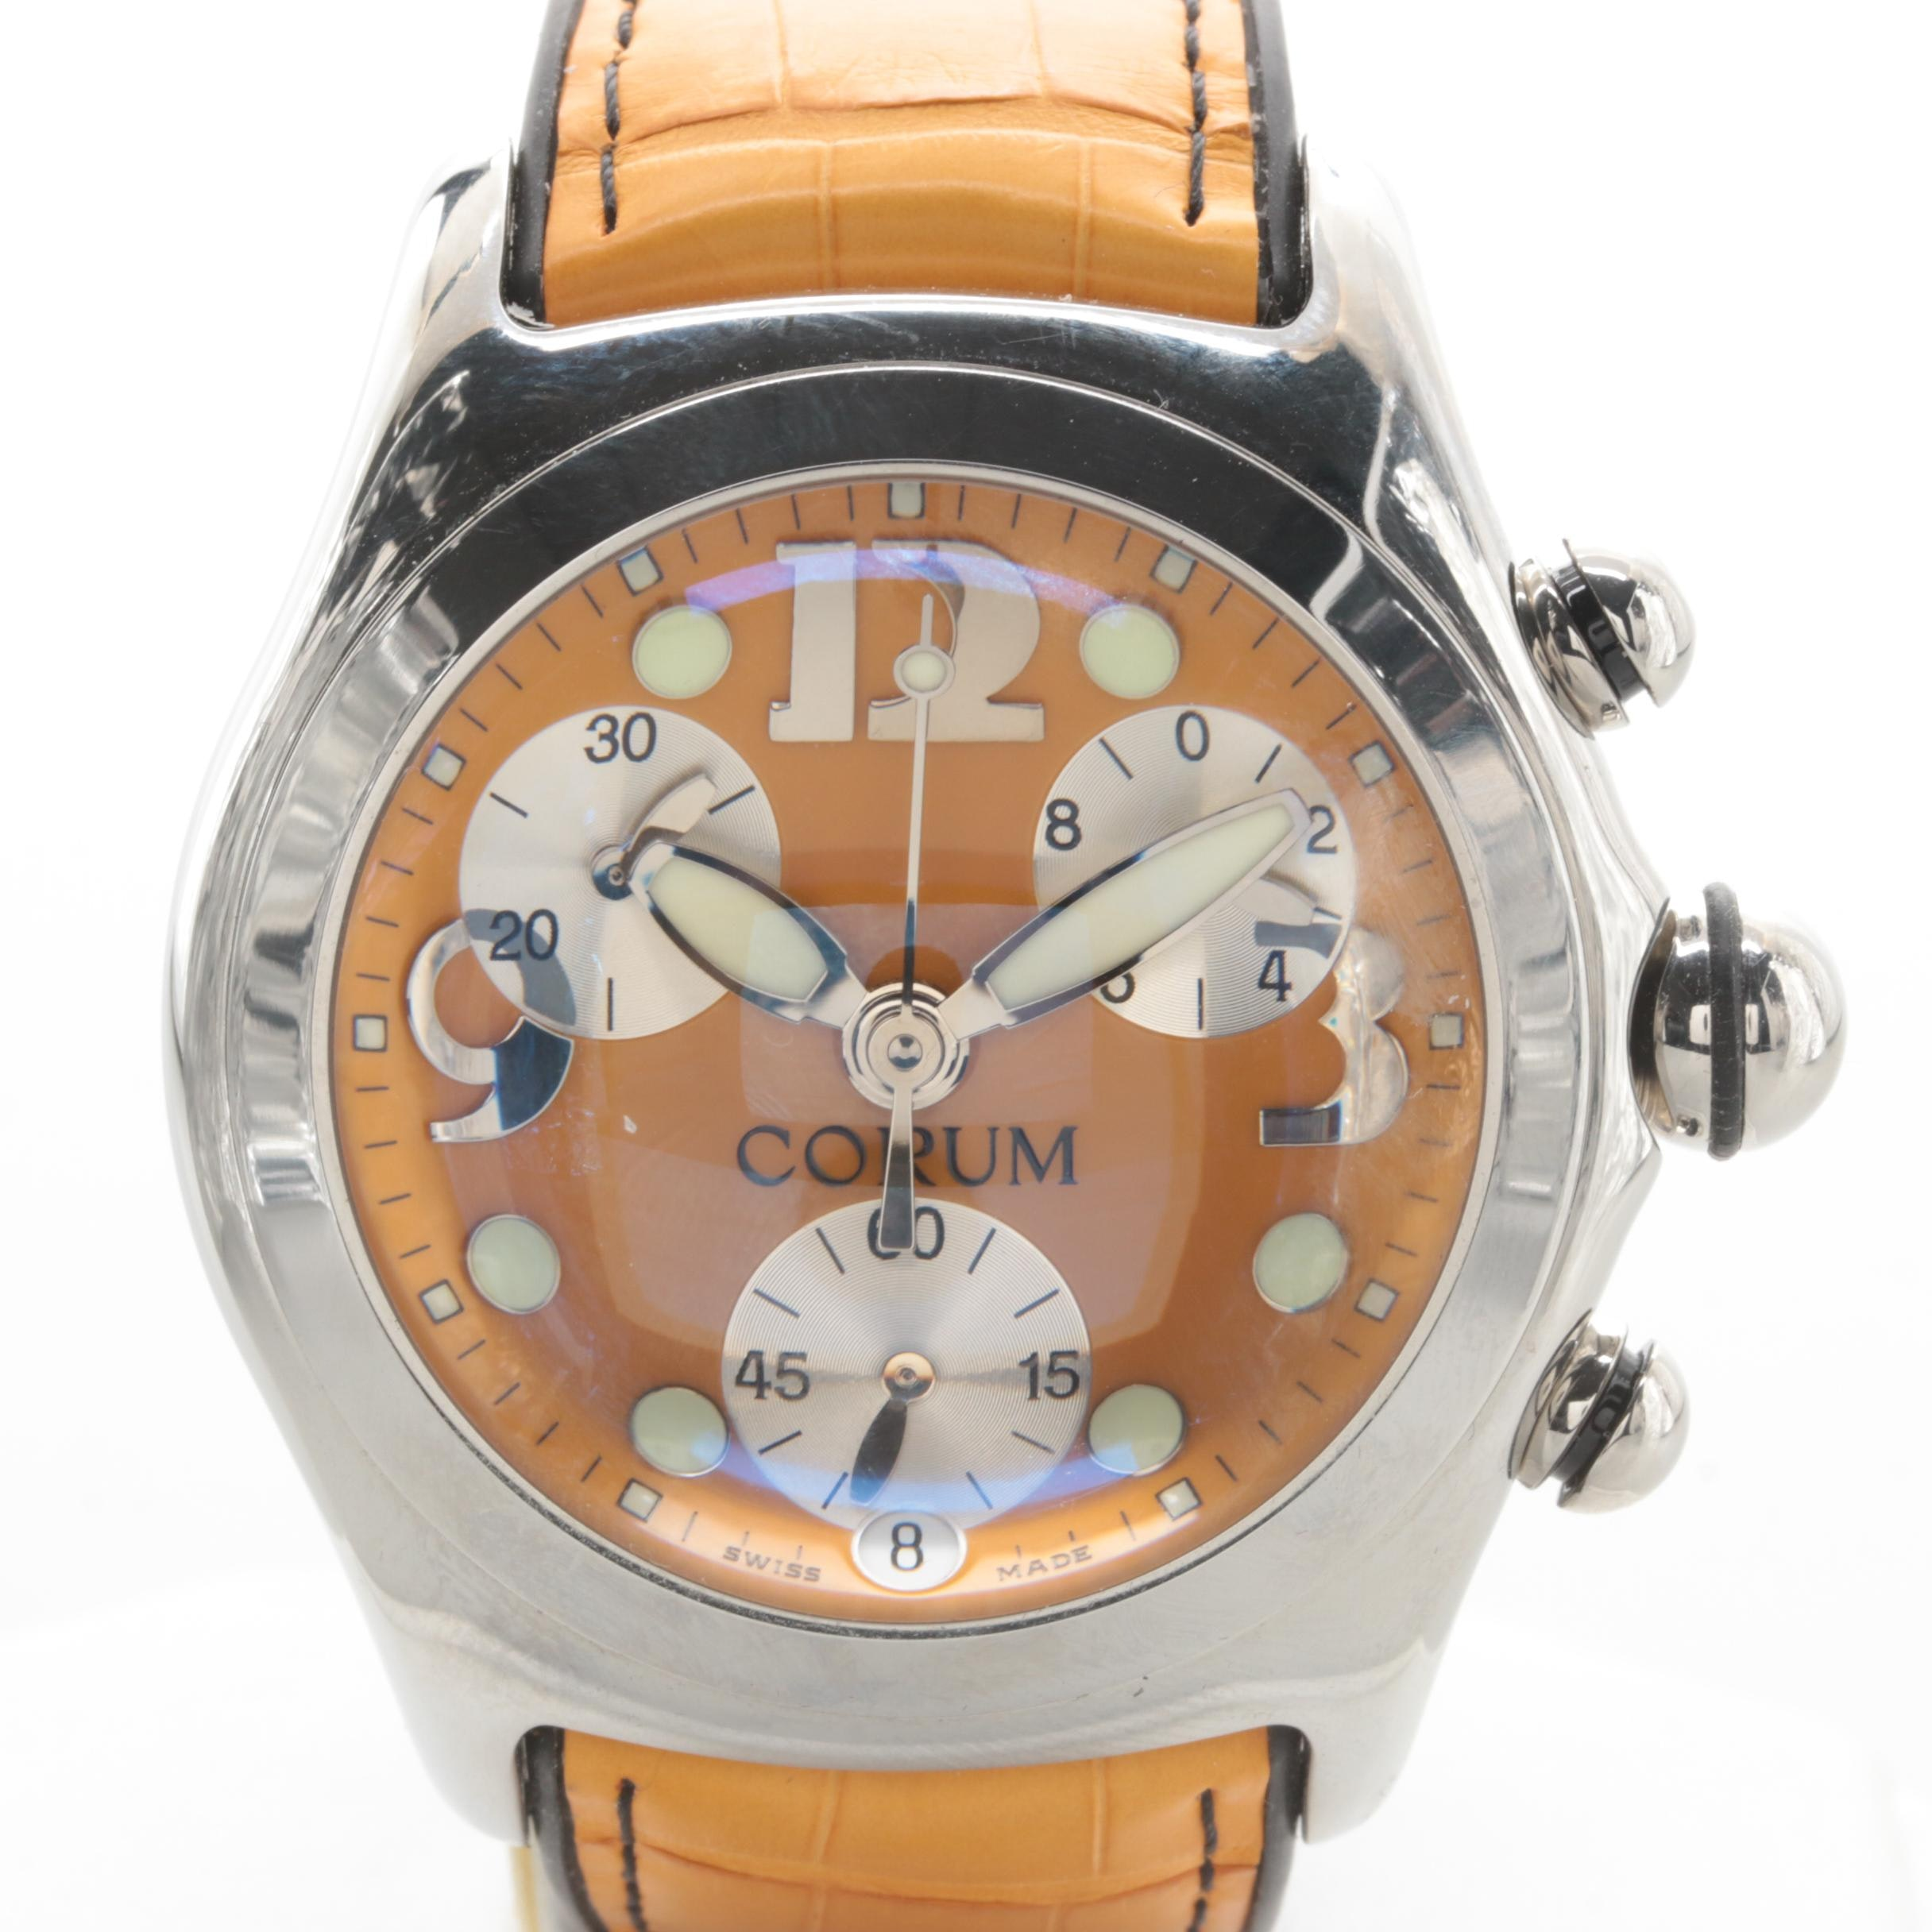 Corum Stainless Steel Chronograph Bubble Wristwatch with Yellow Leather Strap